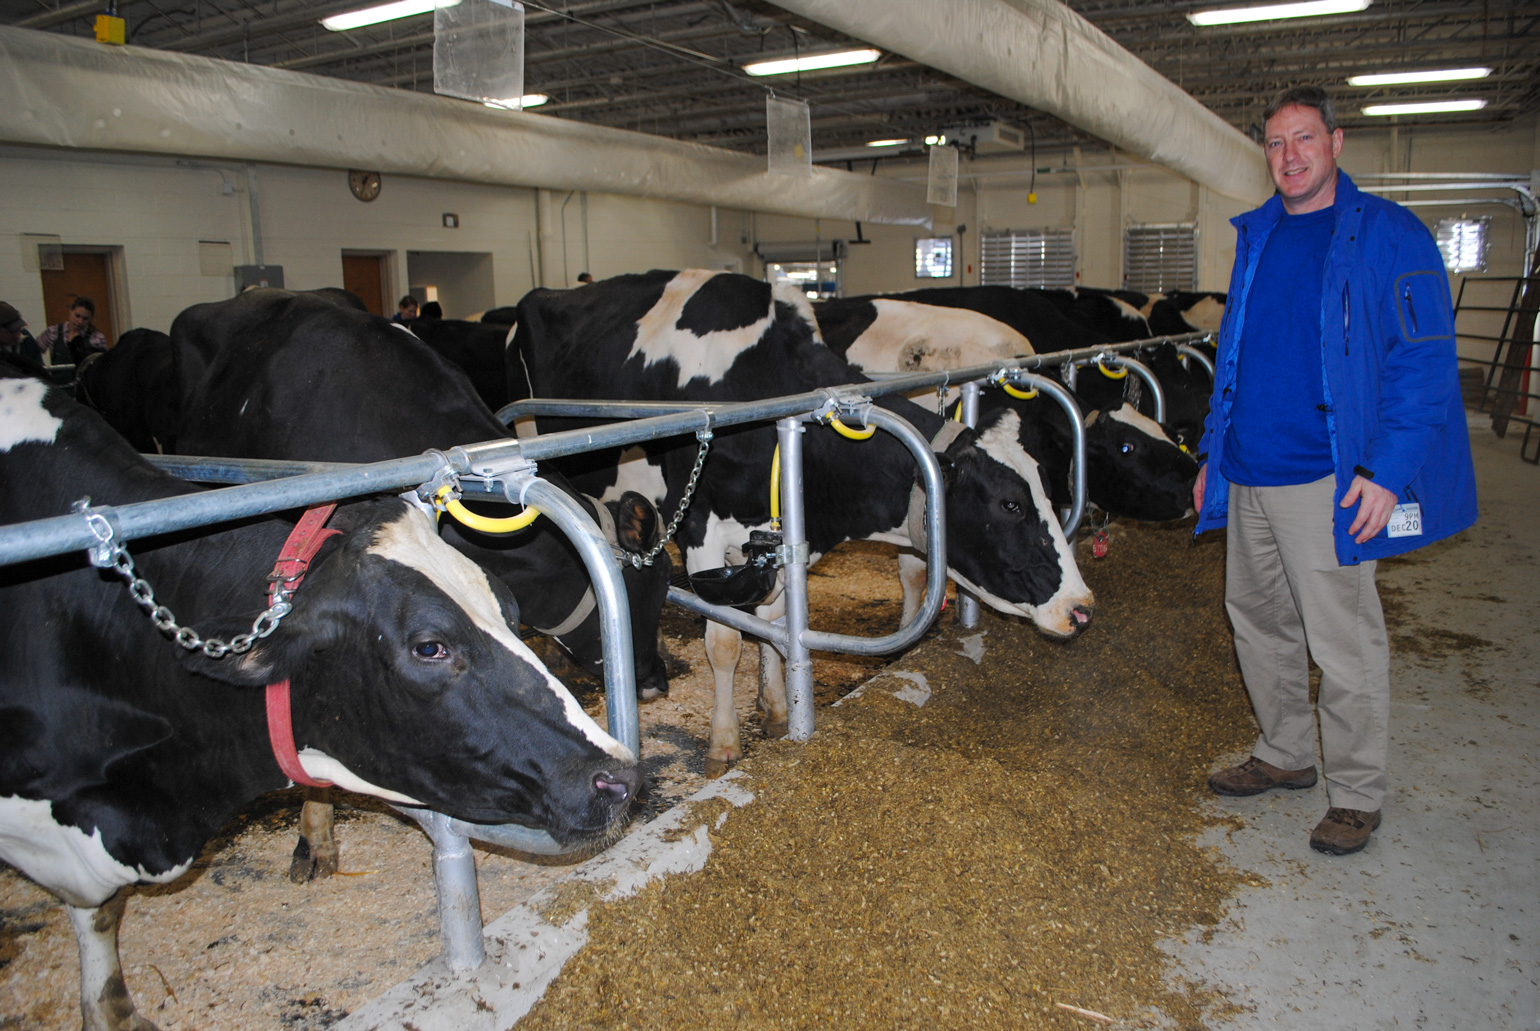 Kent Weigel, chair of the Department of Dairy Science at UW-Madison, posing in front of dairy cows